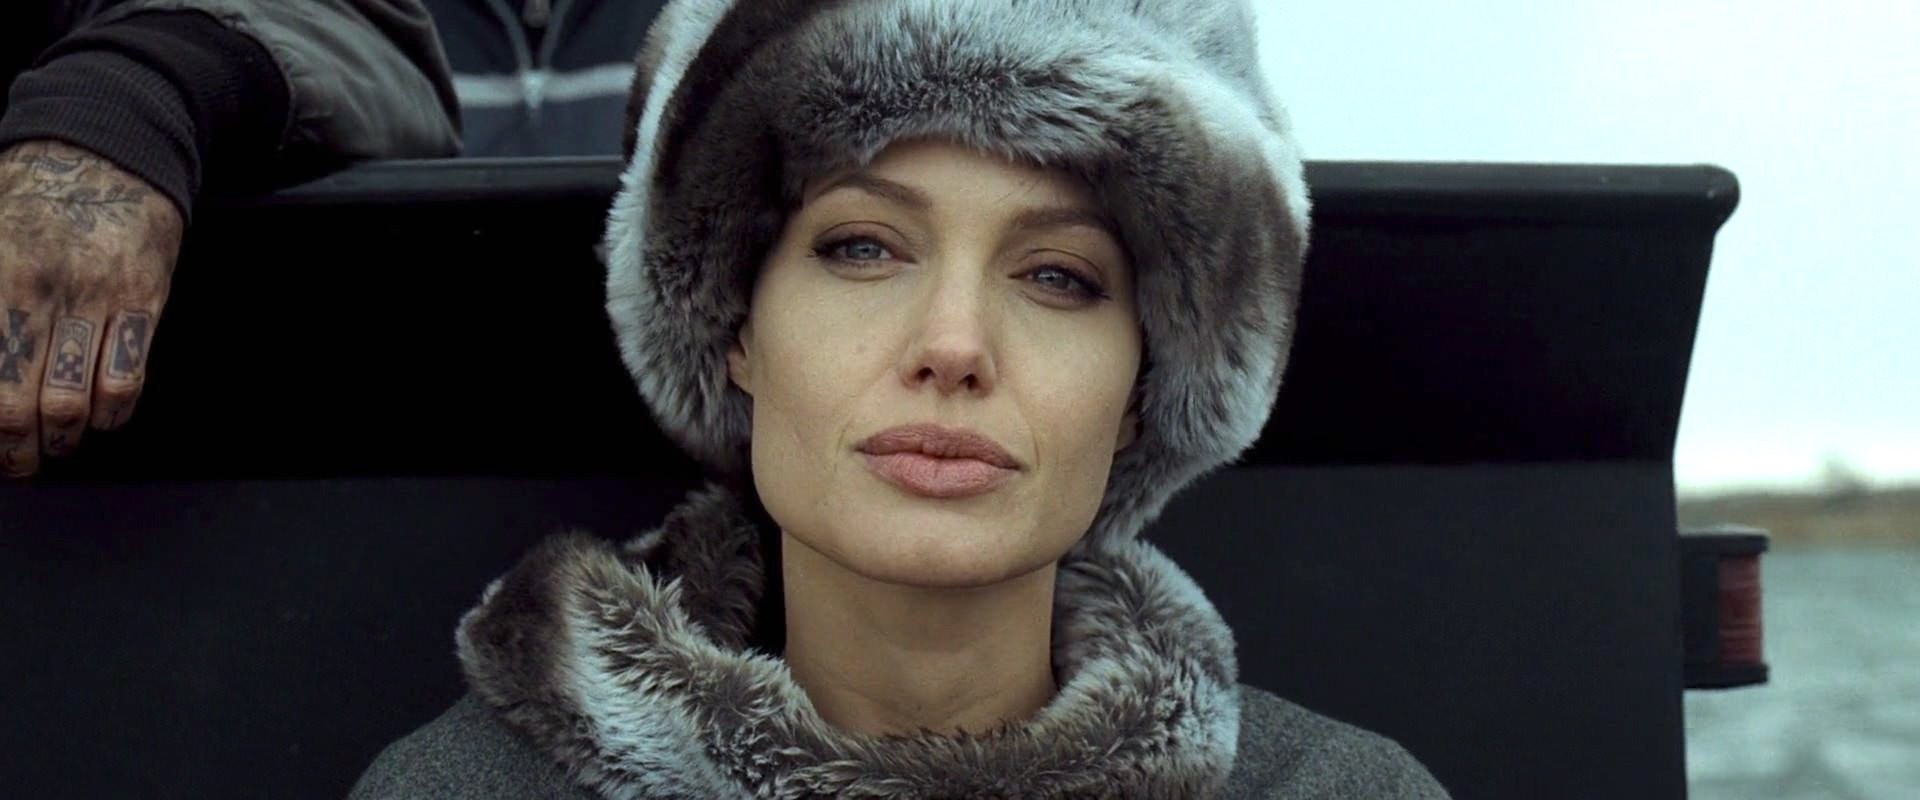 Lawyers for Angelina Jolie filed a motion in Los Angeles concerning her stake in a Luxembourg investment vehicle, which owns a winery in southern France, on 6 July 2021. Publicity still: Angelina Jolie in Salt (2010). Photo: IMDB